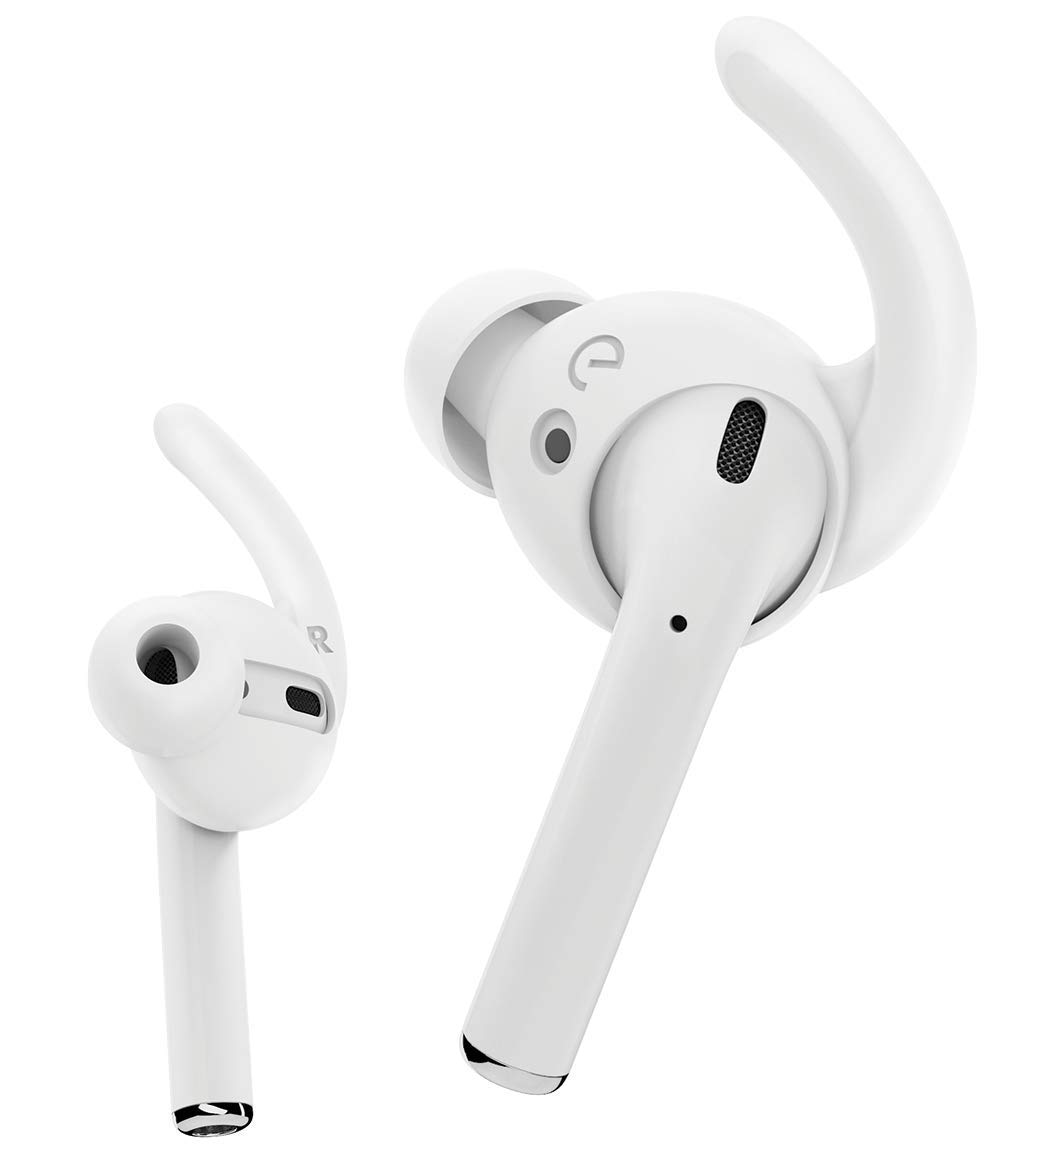 55a983717e1 Amazon.com: EarBuddyz Ultra Ear Hooks and Covers Compatible with Apple  AirPods 1 & AirPods 2 or EarPods Featuring Bass Enhancement Technology  (Medium, ...